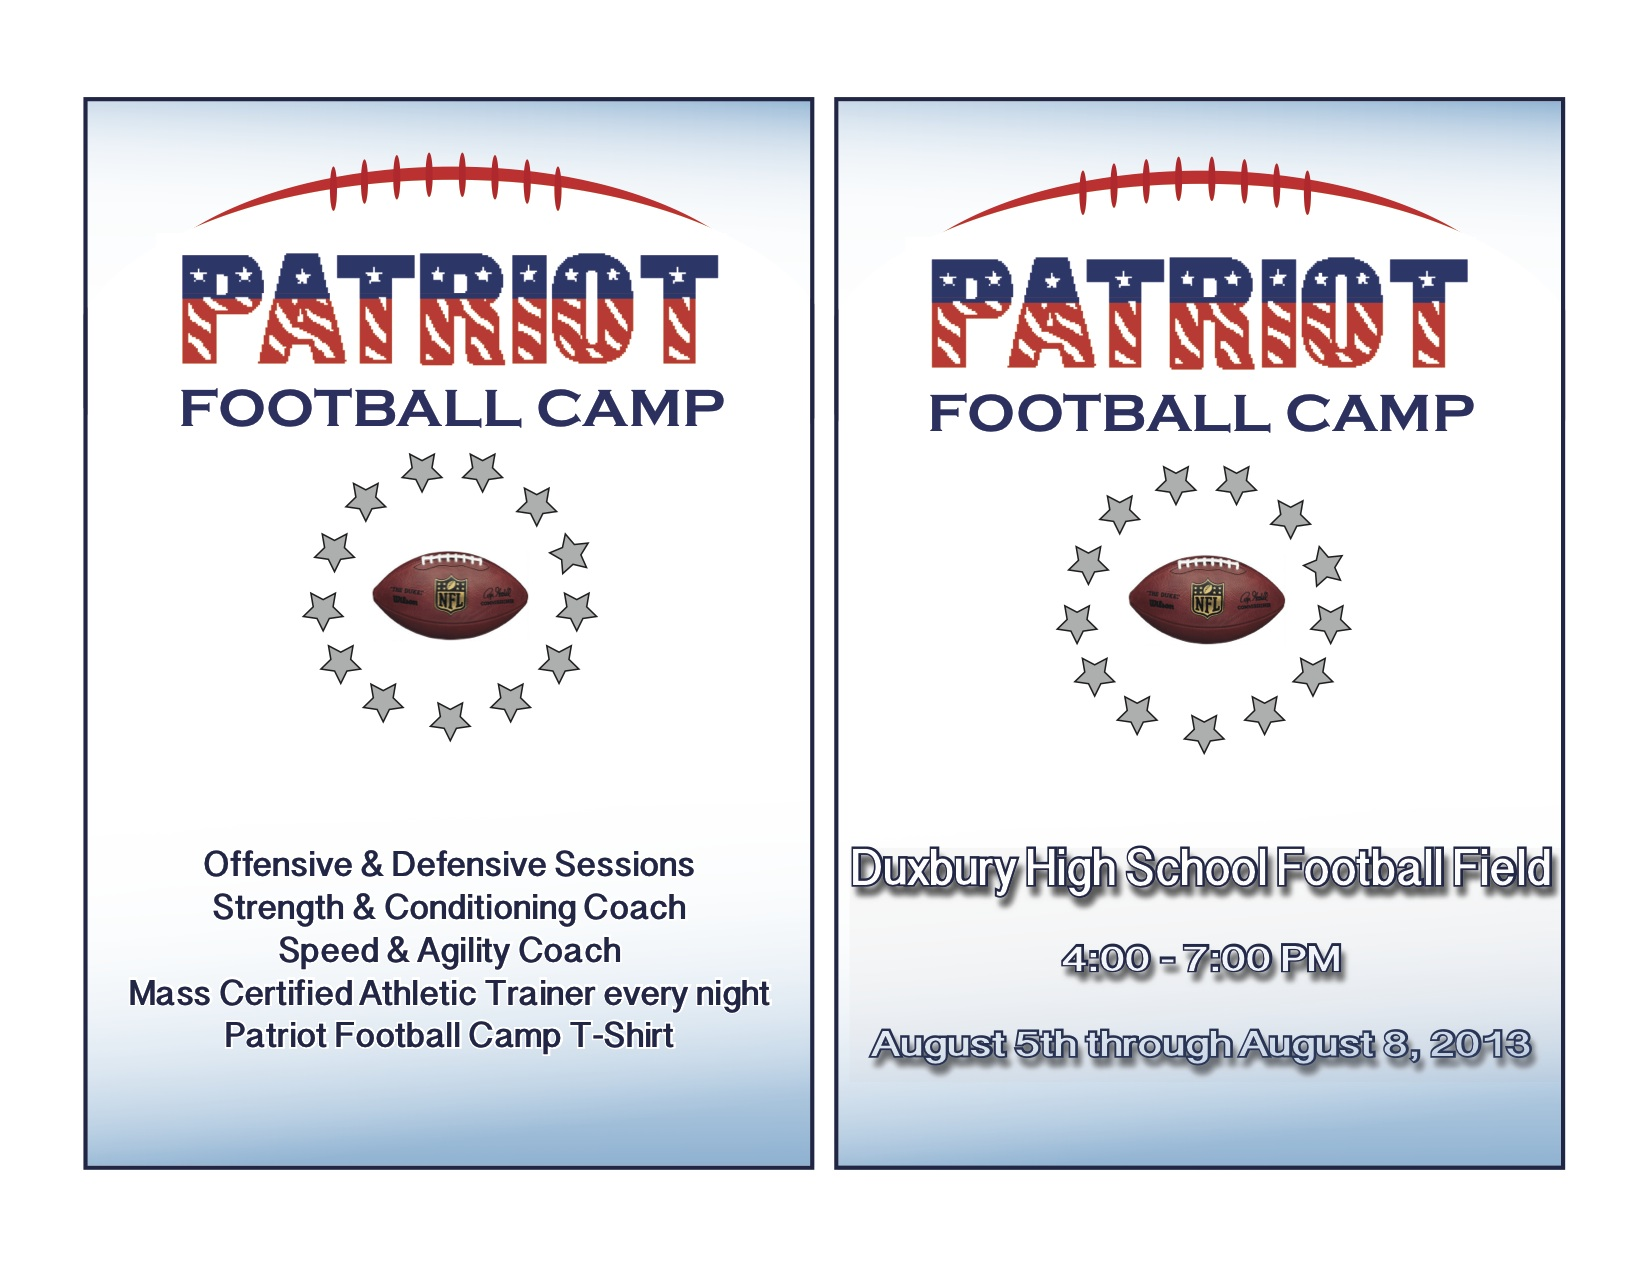 PATRIOT FOOTBALL CAMP – Duxbury Football